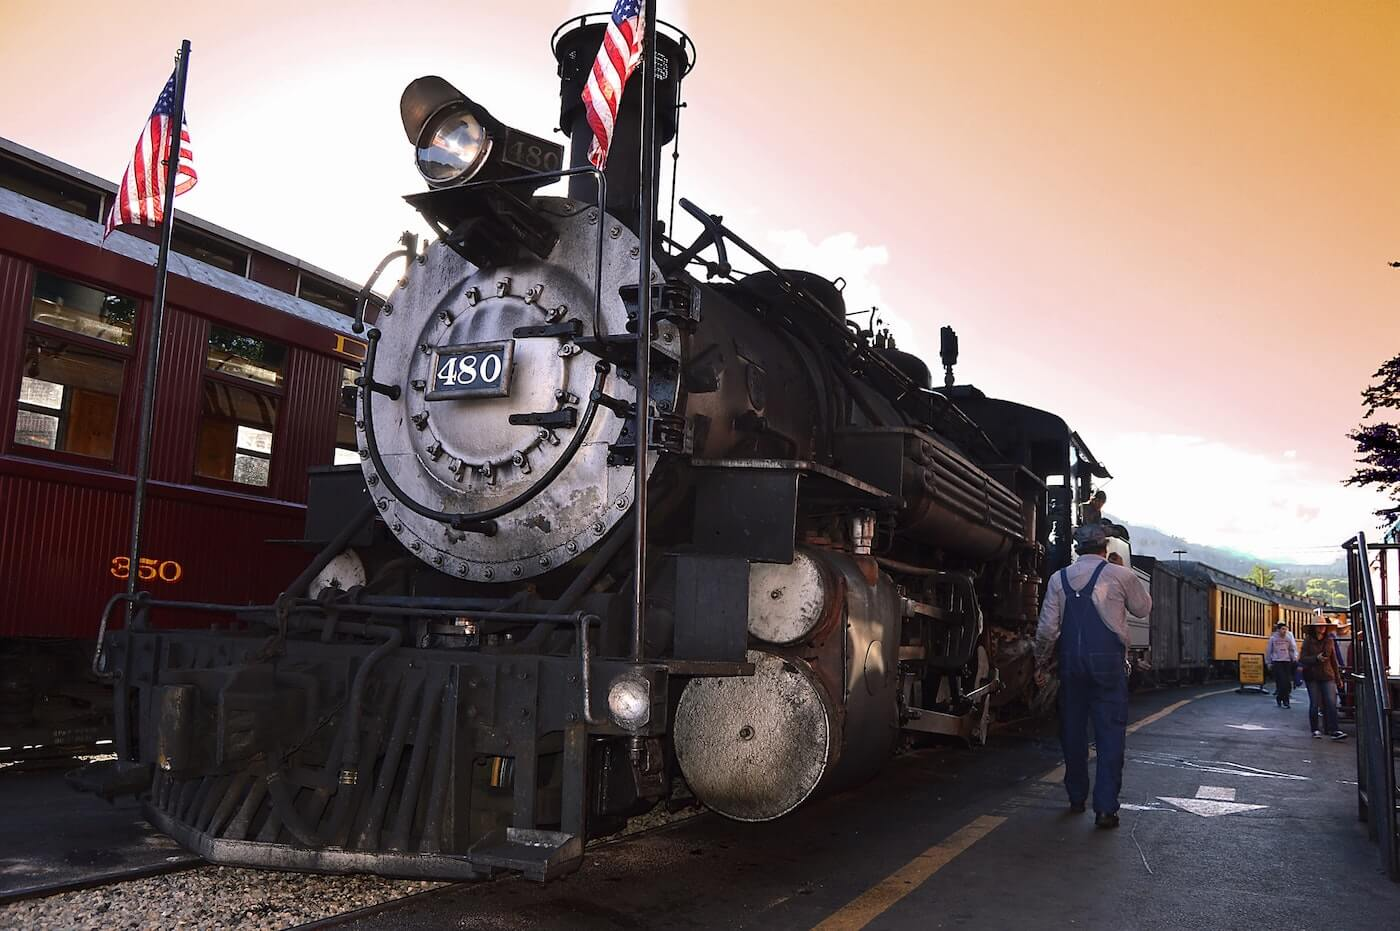 Old train in Durango, CO